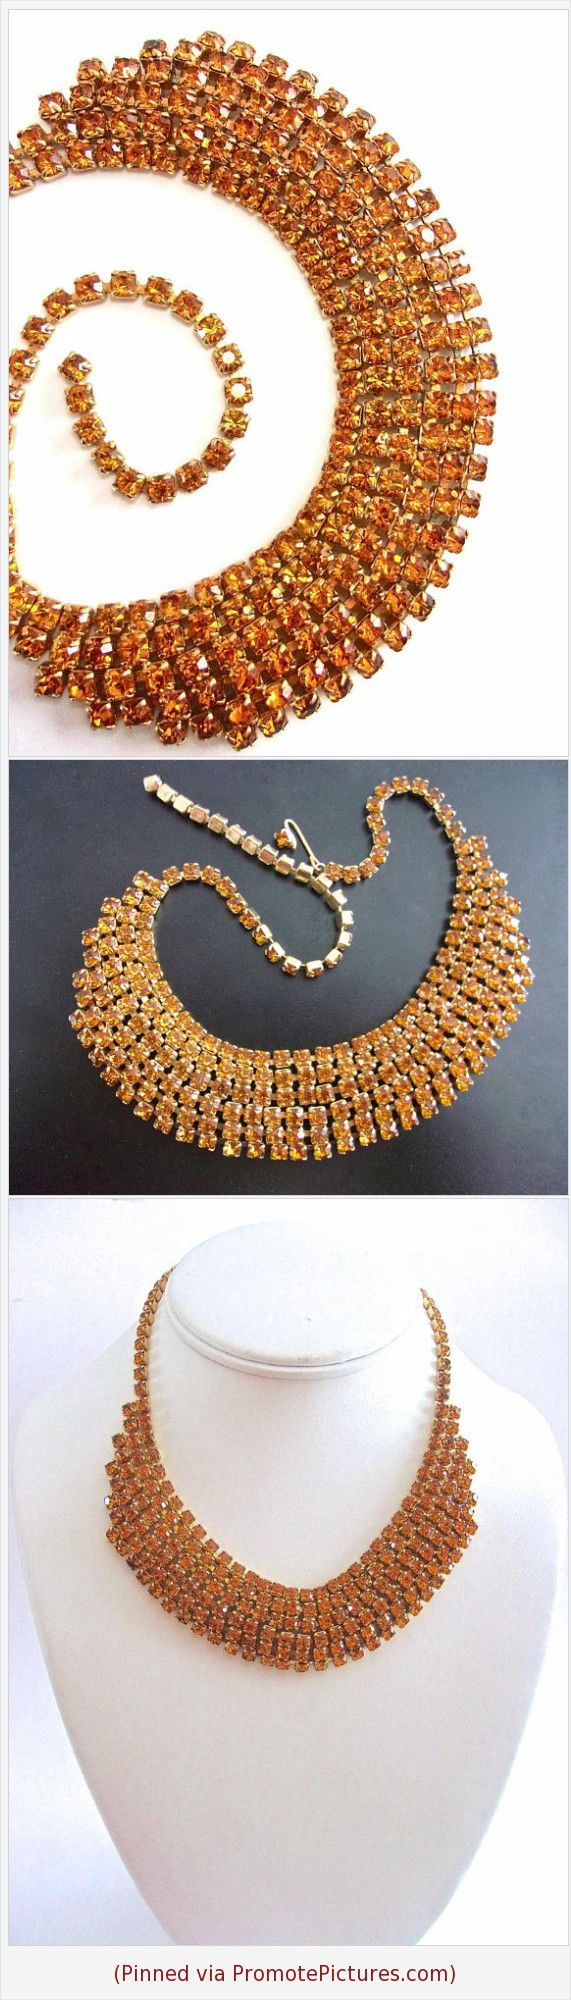 Topaz Rhinestone 6 Row Necklace, Unsigned Weiss, Gold Plated, Vintage #necklace #rhinestones #topaz #wide #6row #unsignedweiss #weiss #goldplate #vintage #glamour https://www.etsy.com/RenaissanceFair/listing/581741640/topaz-rhinestone-6-row-necklace-unsigned?ref=listings_manager_grid  (Pinned using https://PromotePictures.com)